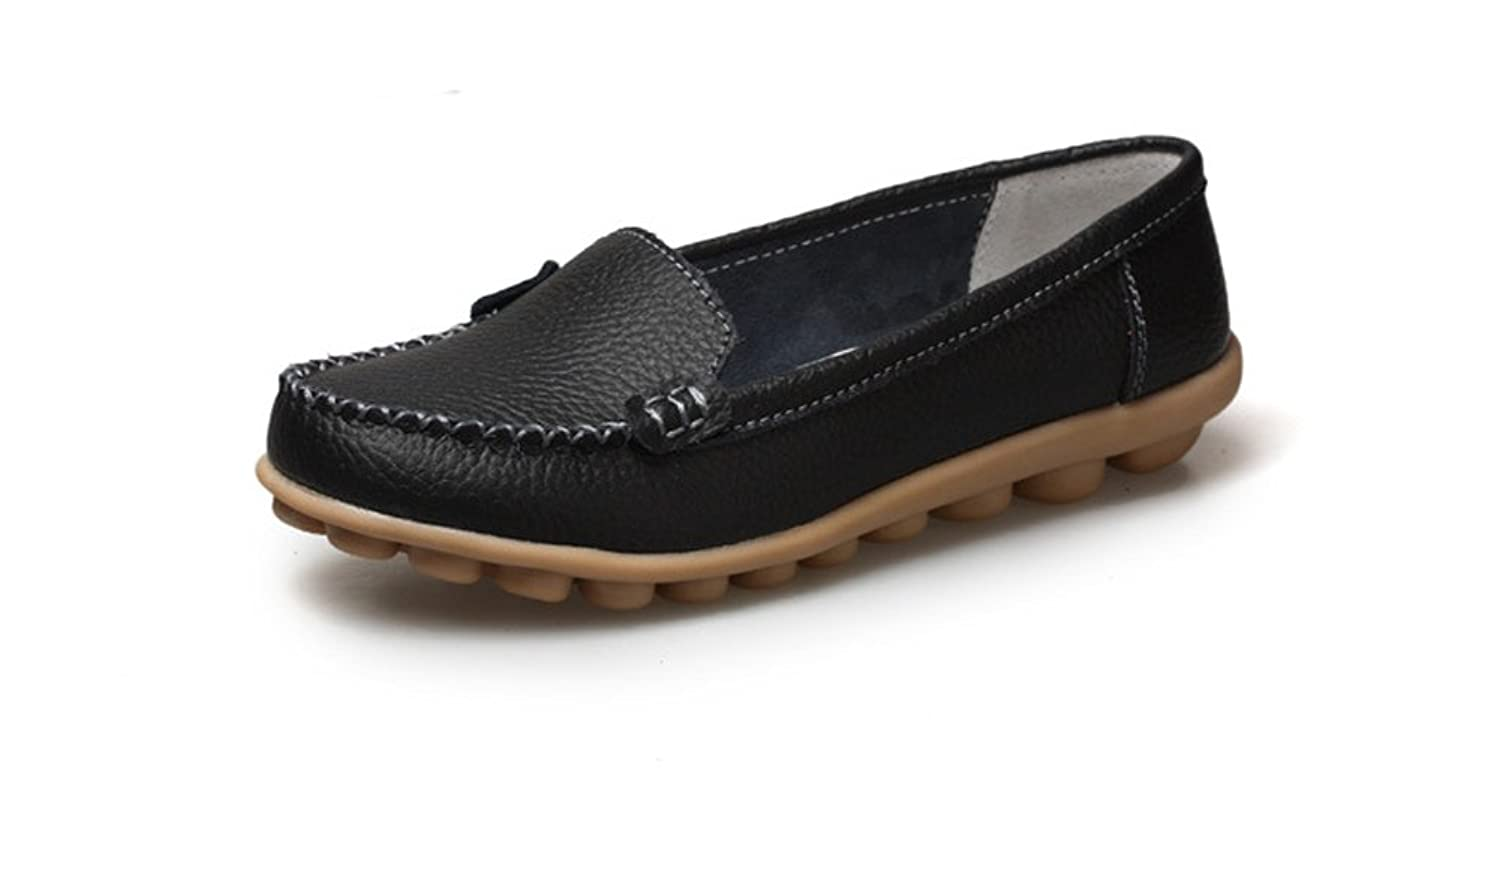 193c790295c free shipping Lucksender Womens Comfort Driving Flat Loafers Shoes ...